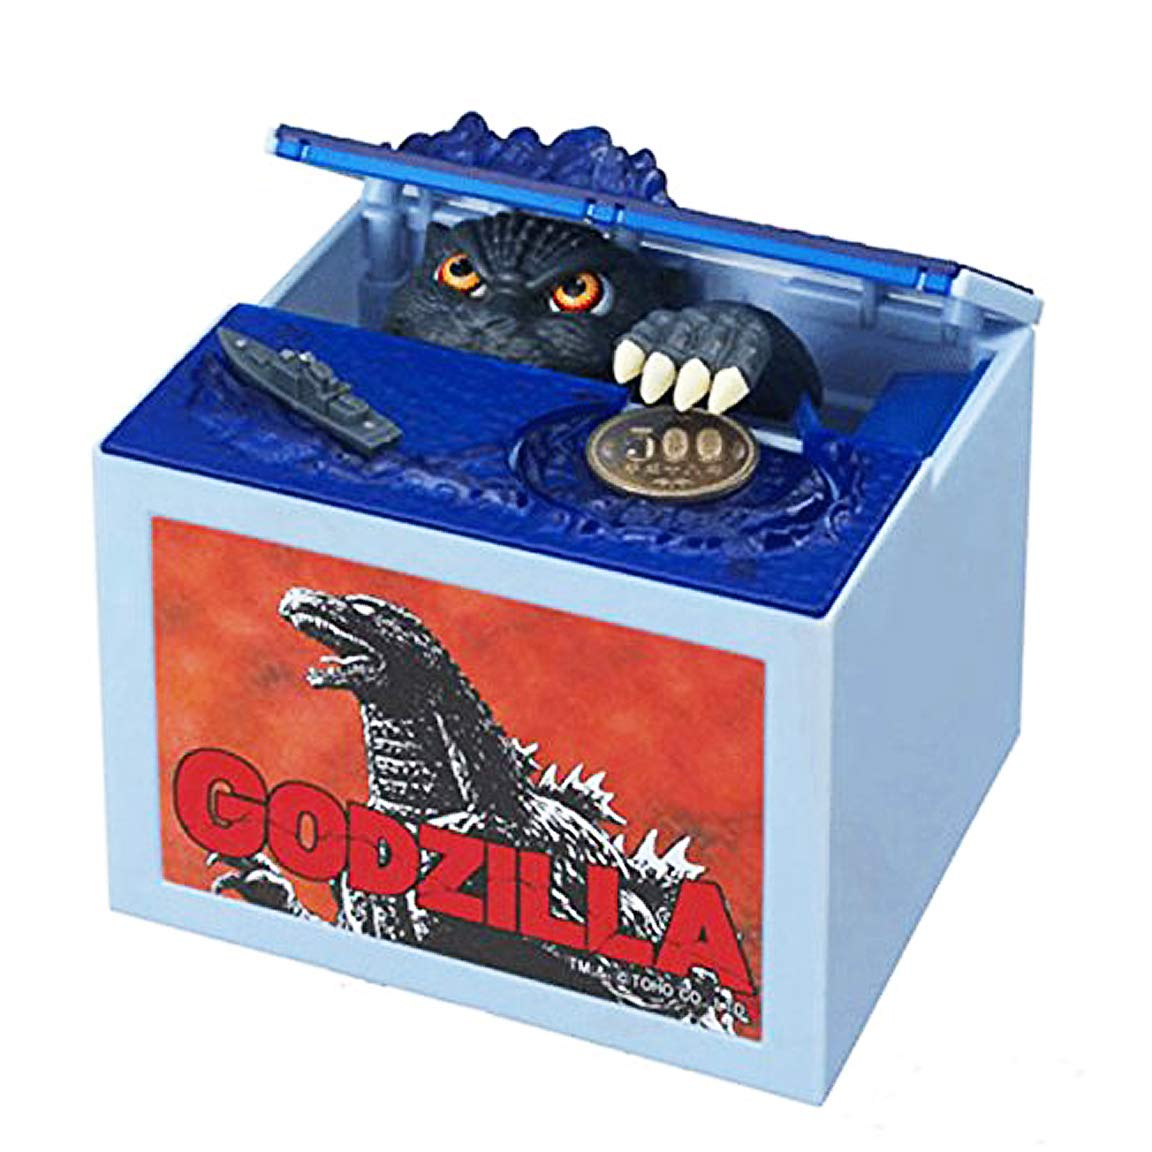 Happy Sales HSCB-GODZL, Godzilla Piggy Bank Money Bank Automatic Coin Bank Box by Happy Sales